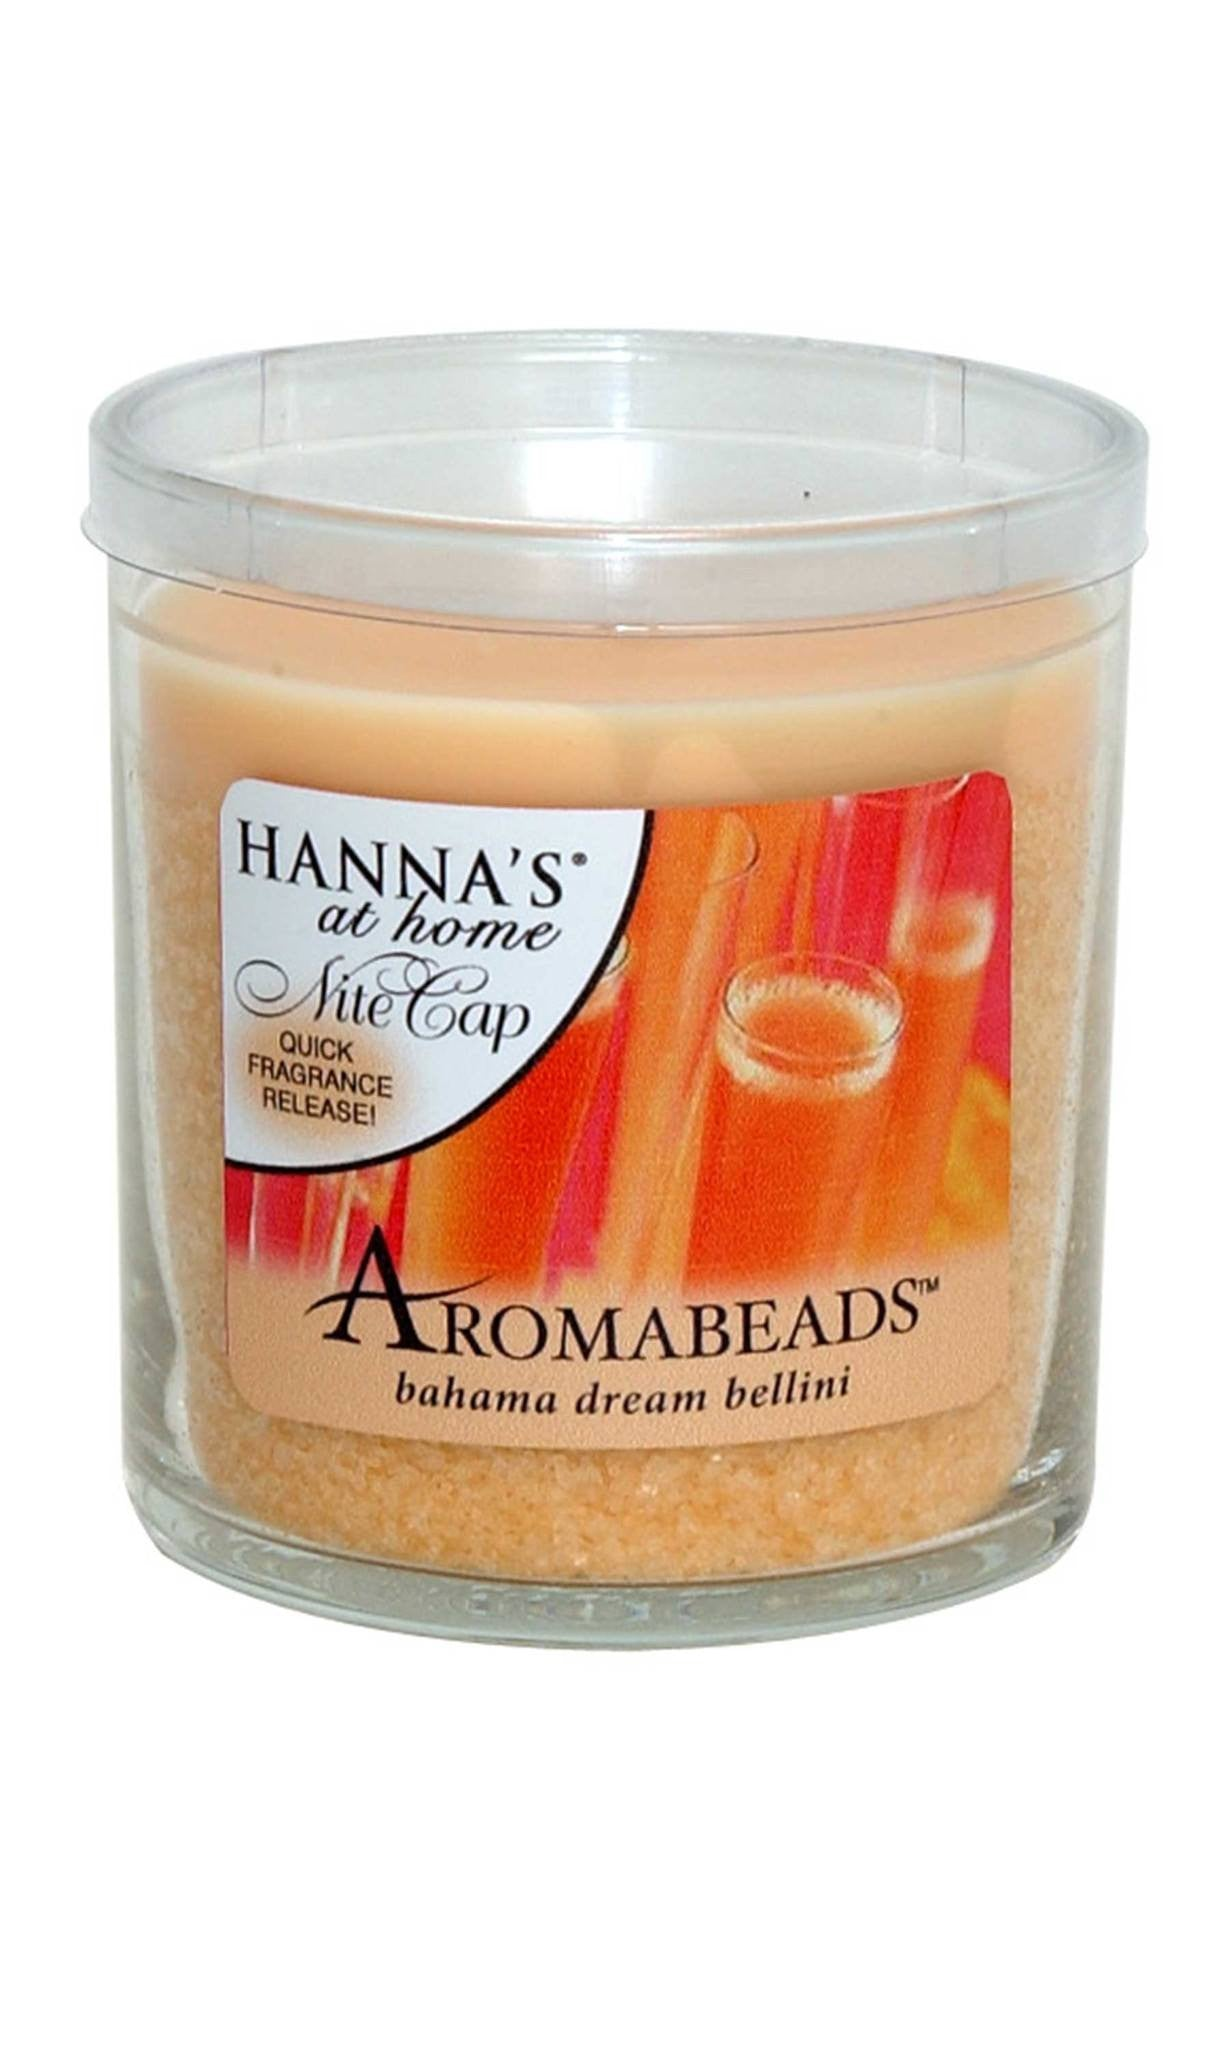 Aromabeads Bahama Dream Bellini Scented Tumbler Candle - Candlemart.com